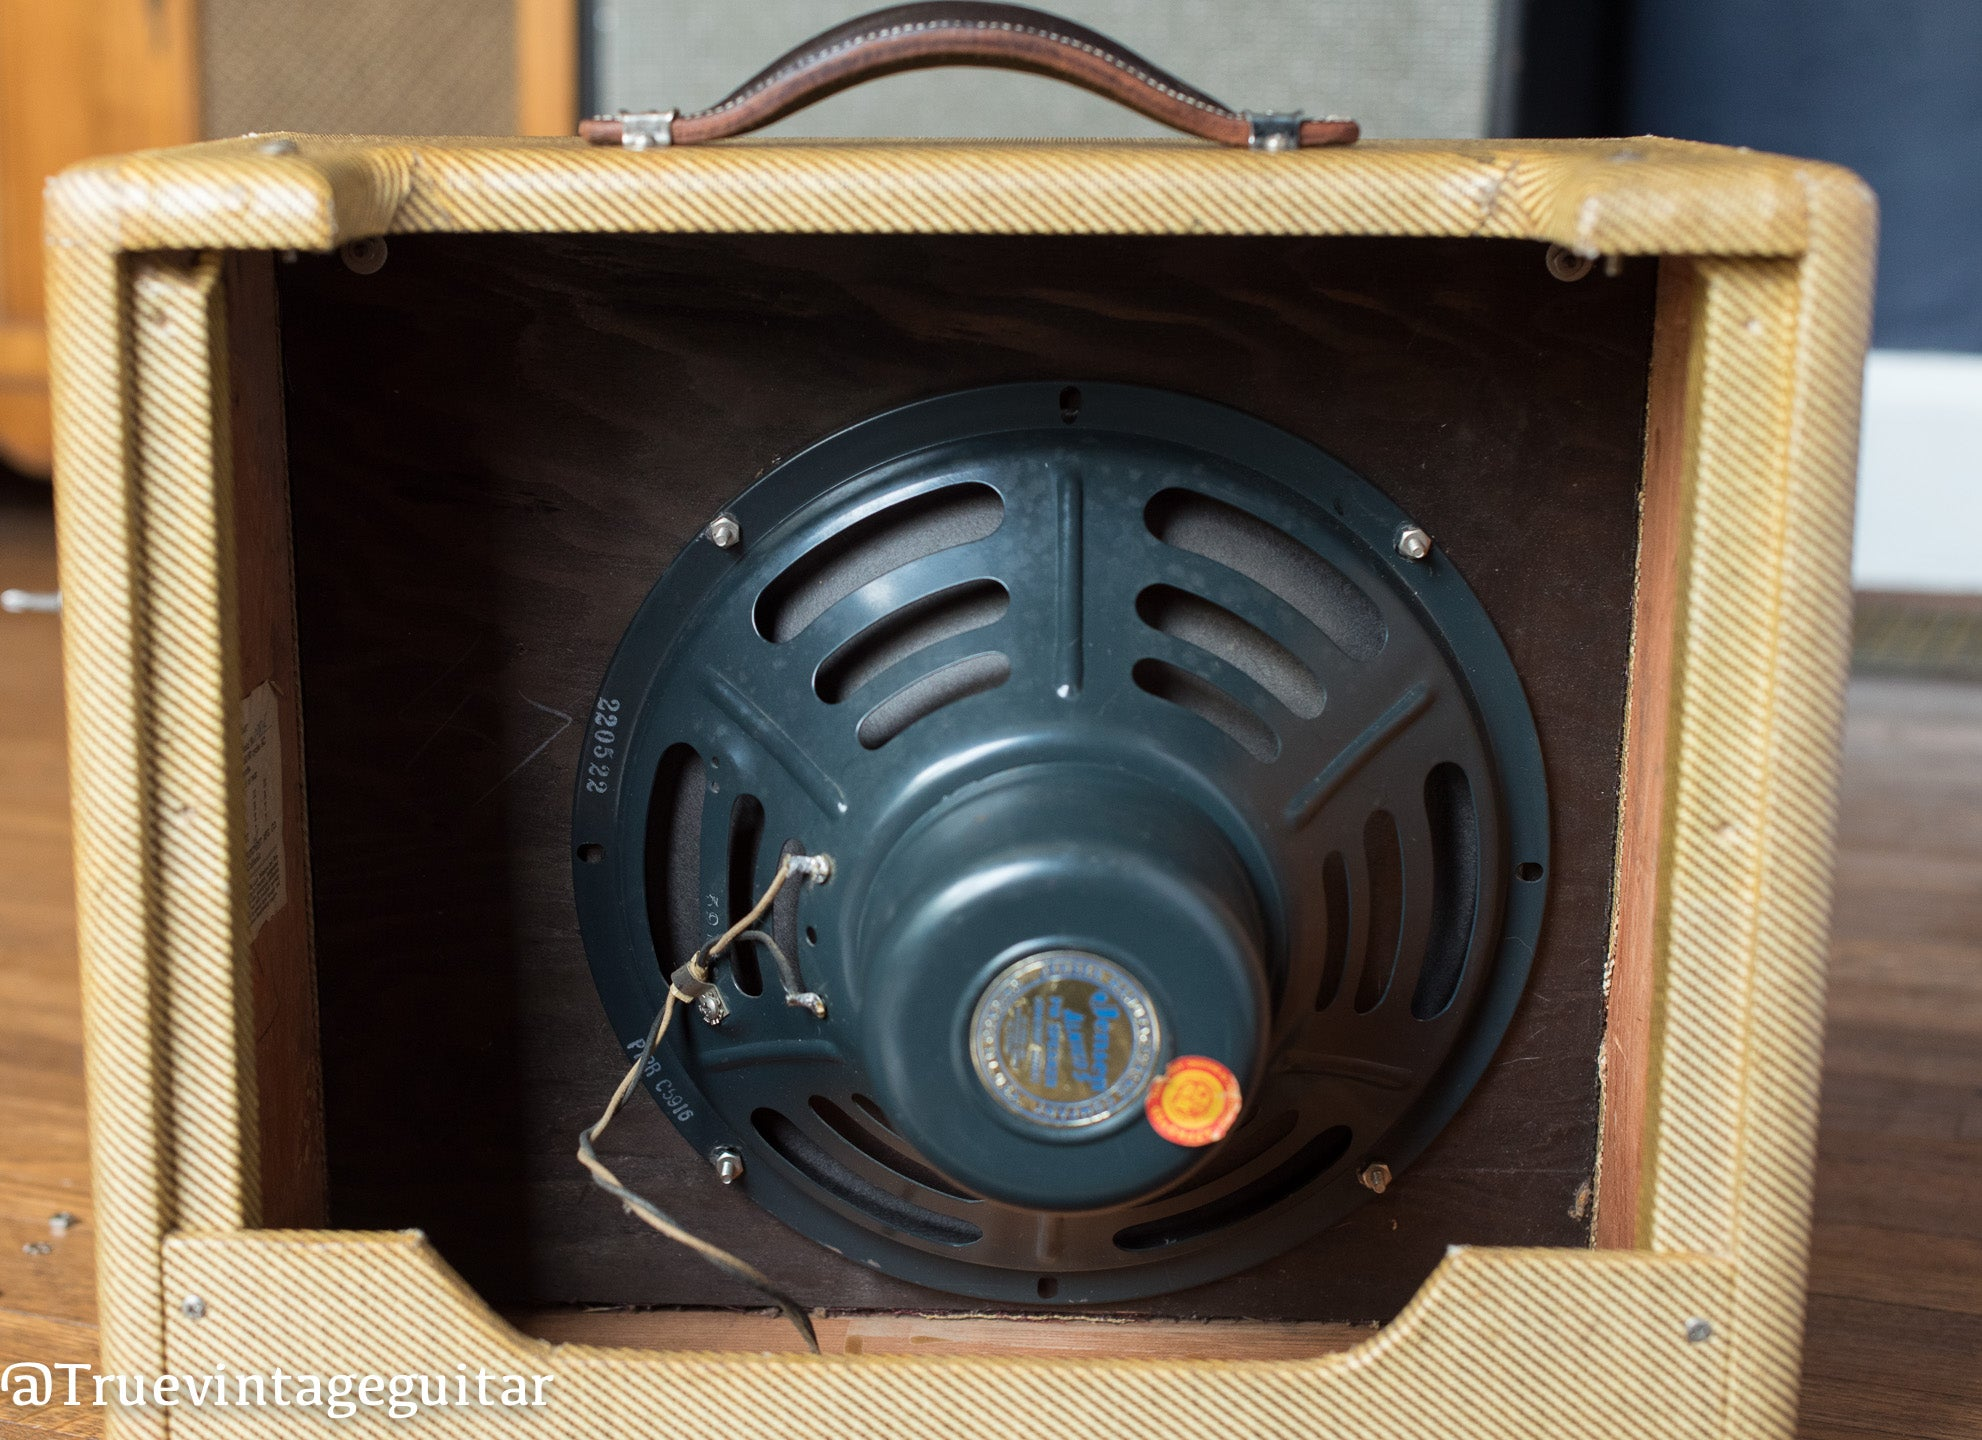 Jensen P12R speaker, 1955 Fender tweed Deluxe